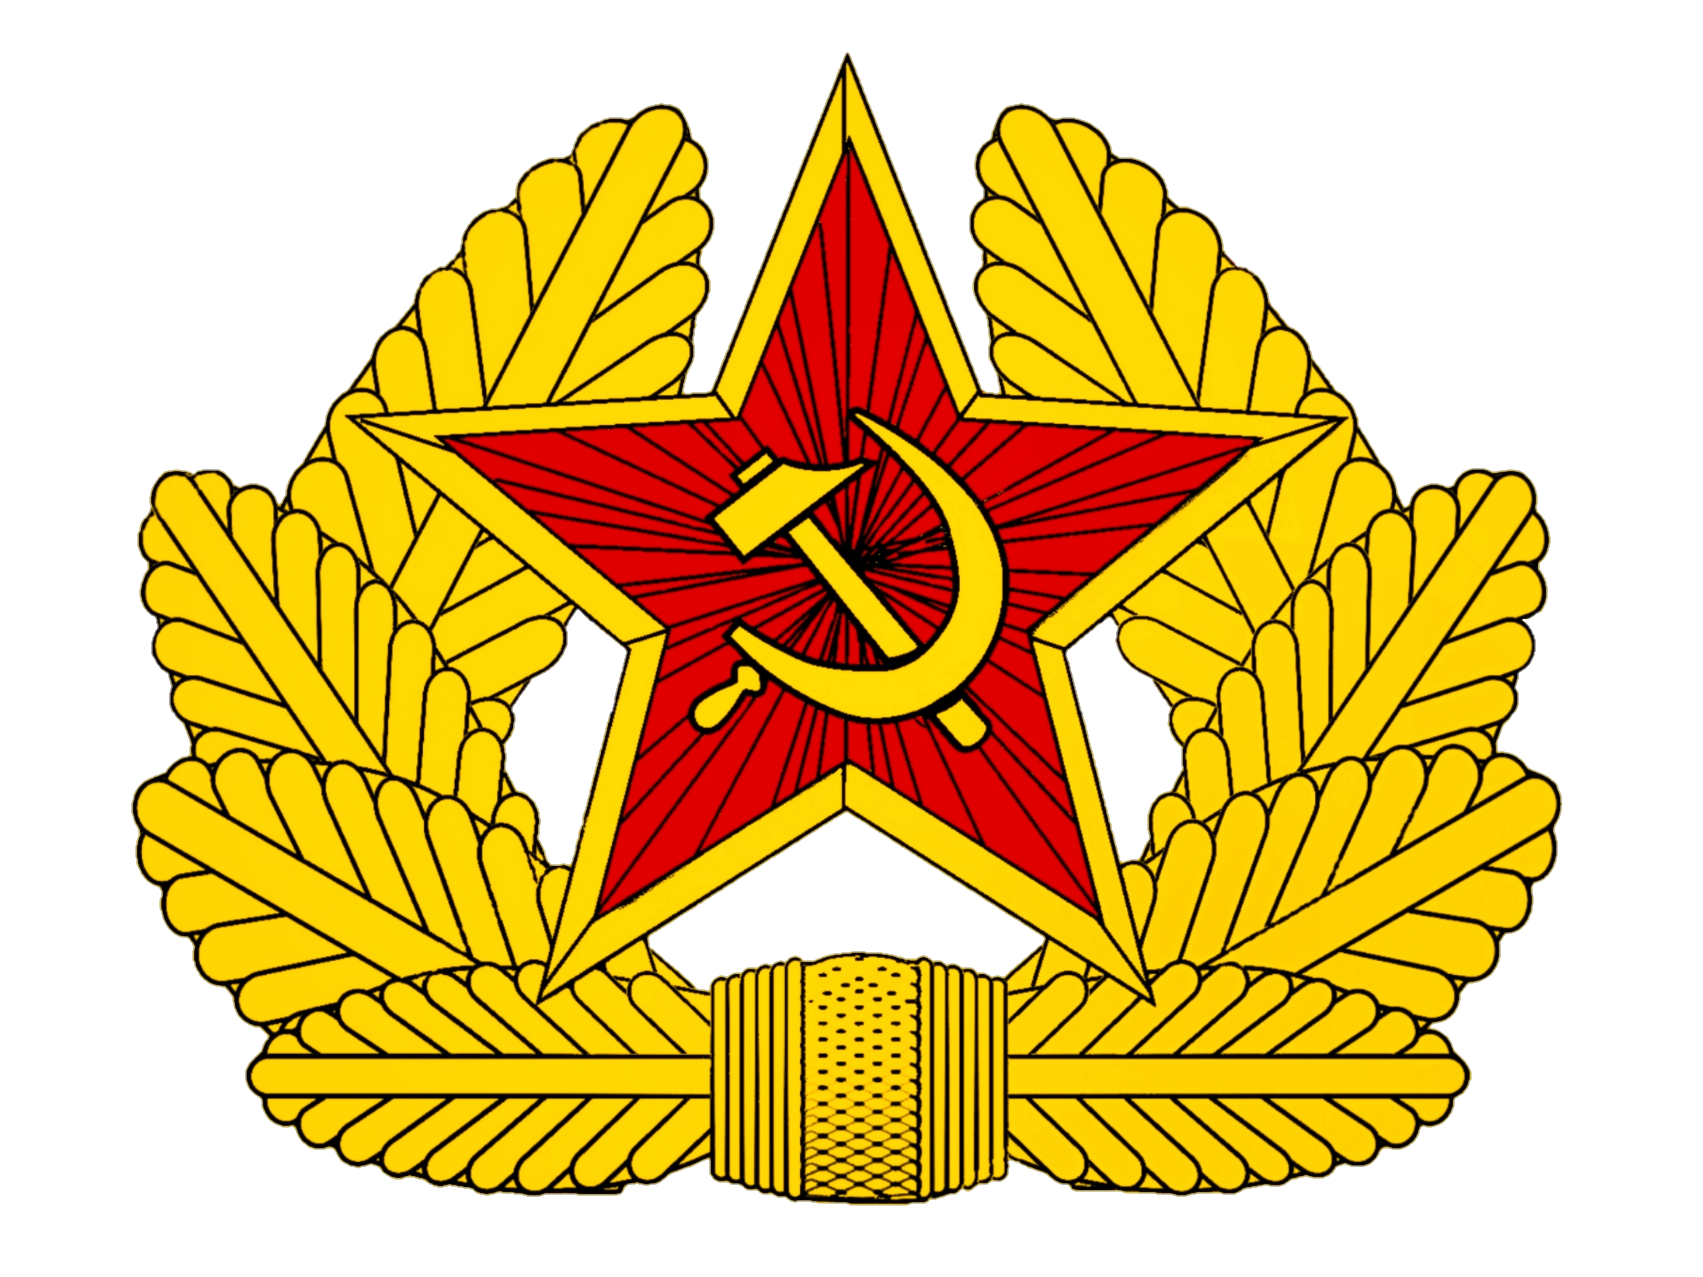 Red Army (Call of Duty)